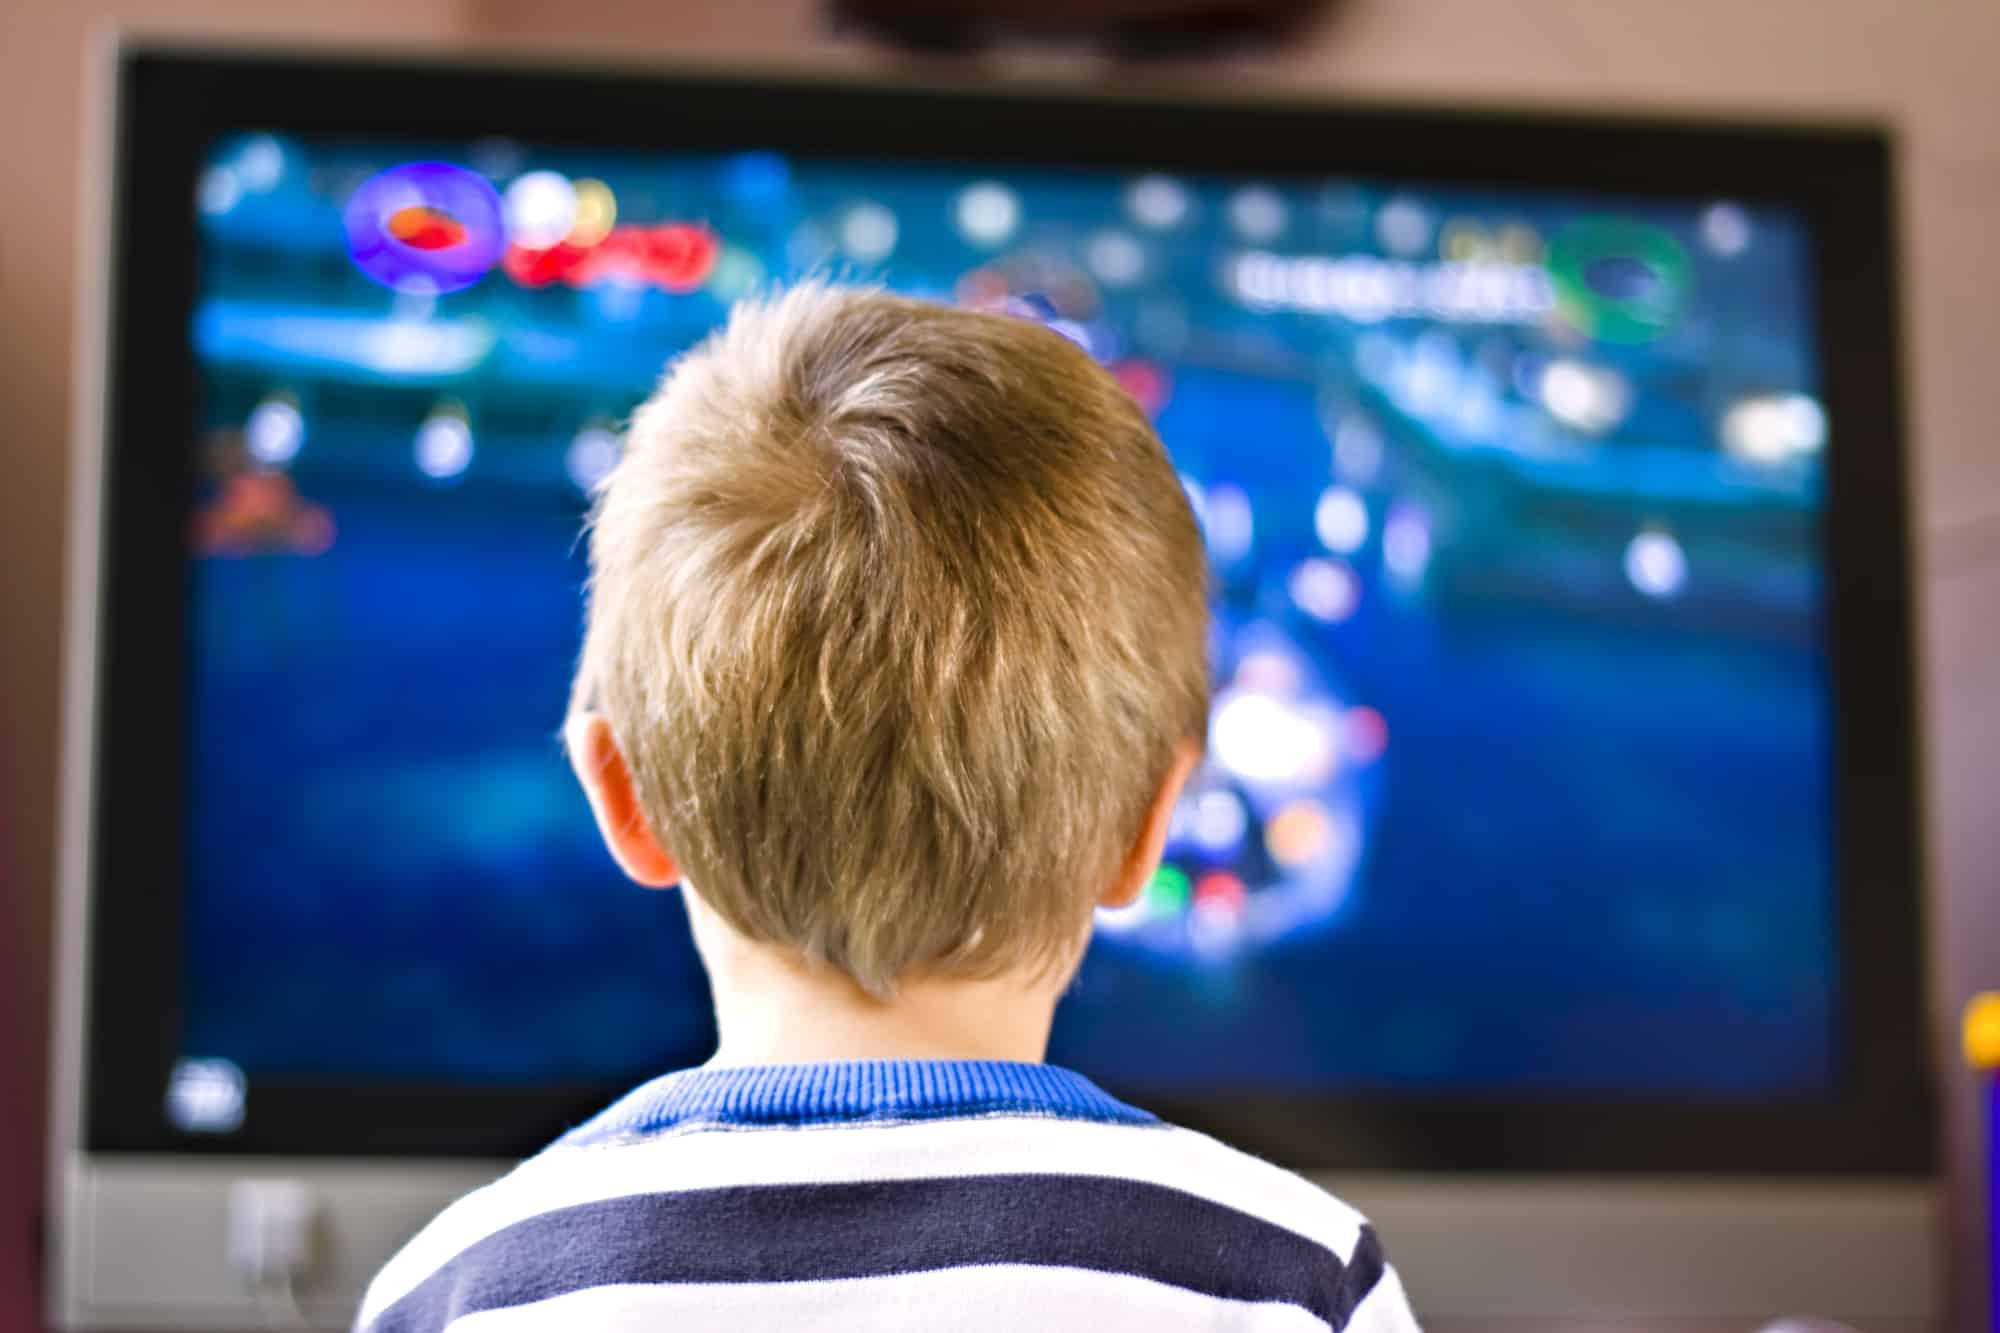 The back of a little boys head in front of an active TV screen.